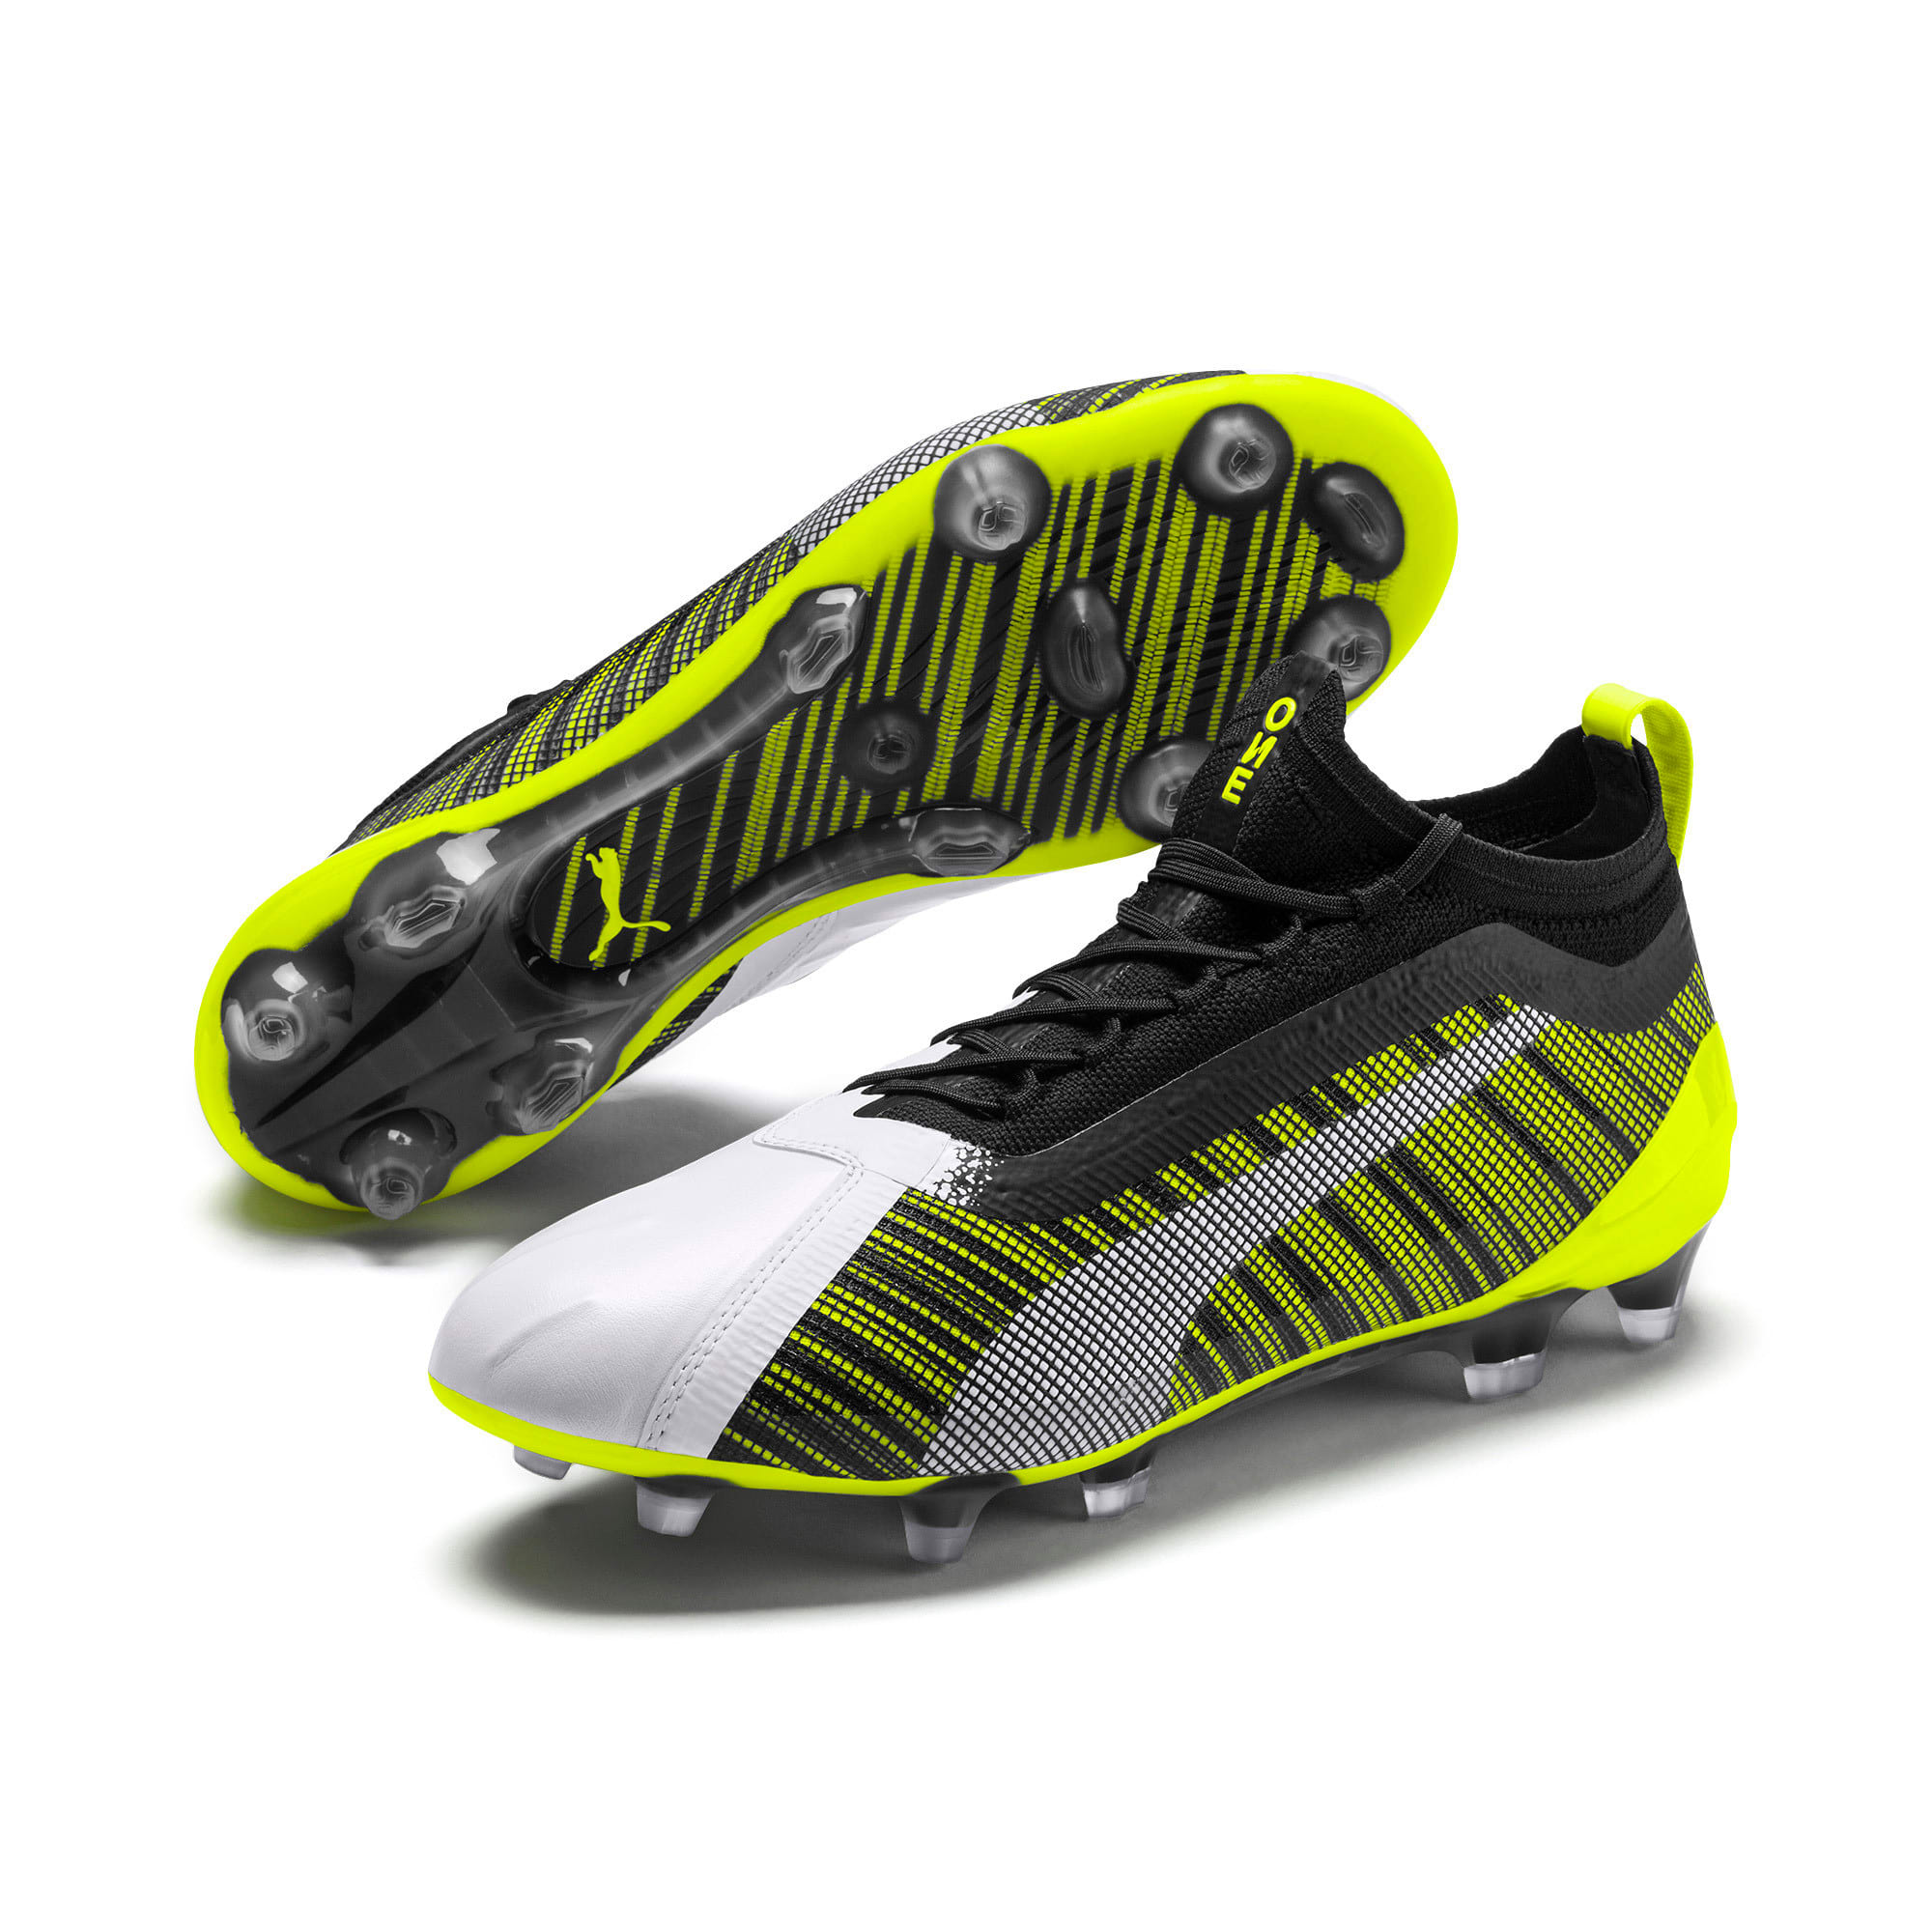 Thumbnail 3 of PUMA ONE 5.1 evoKNIT FG/AG Men's Football Boots, White-Black-Yellow Alert, medium